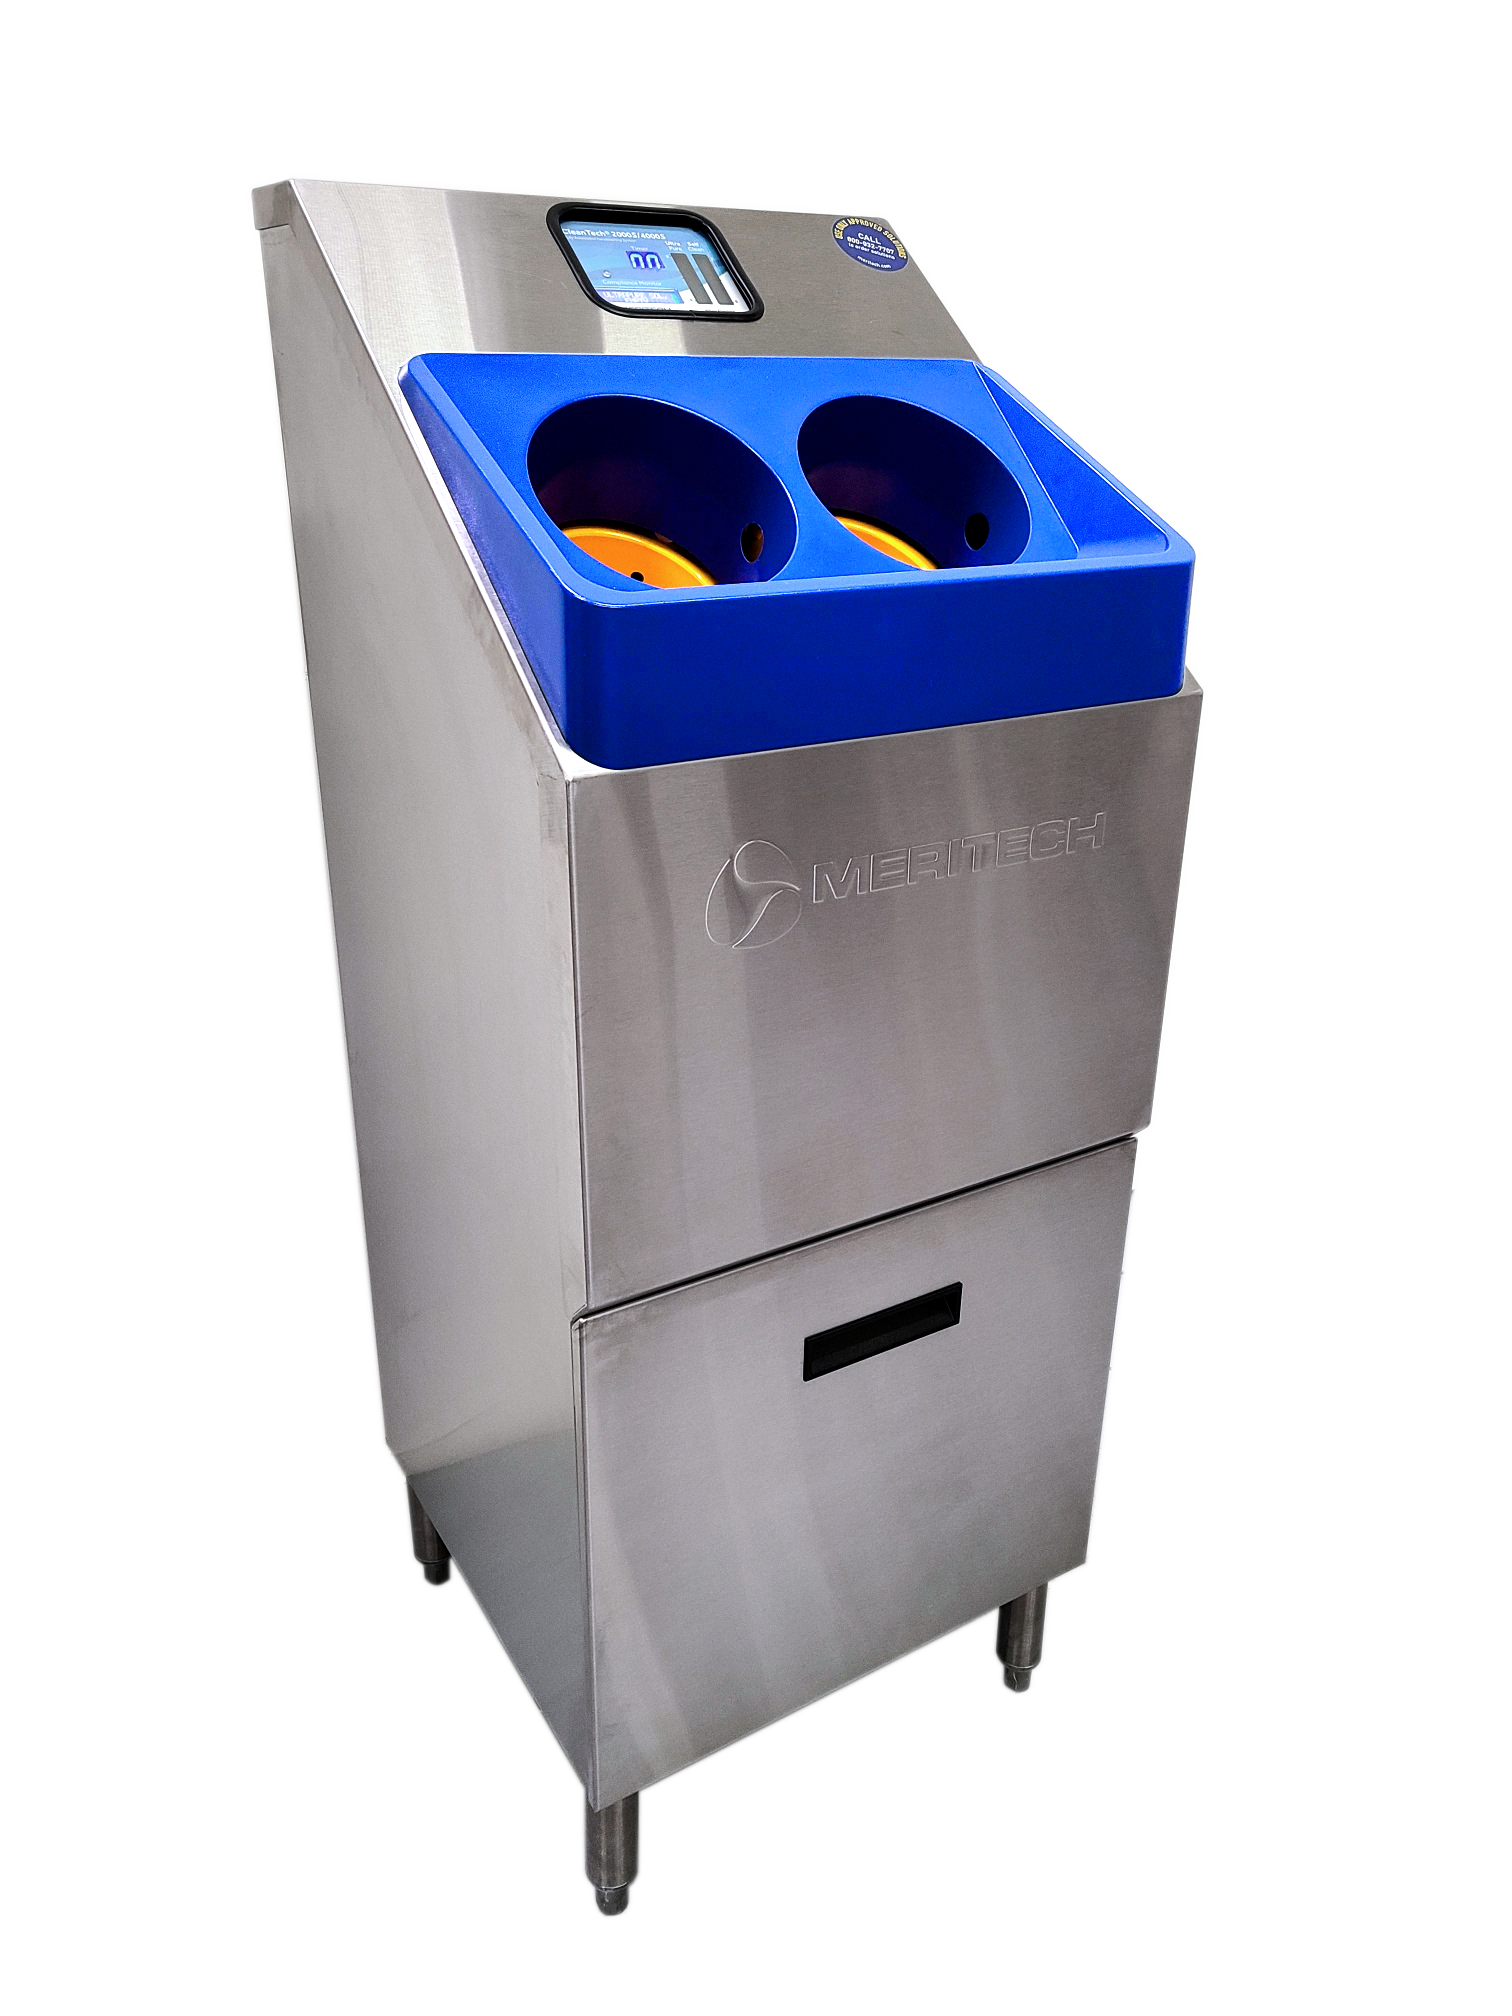 CleanTech® 2000S Free-Standing Automated Handwashing Station for Industrial Environments